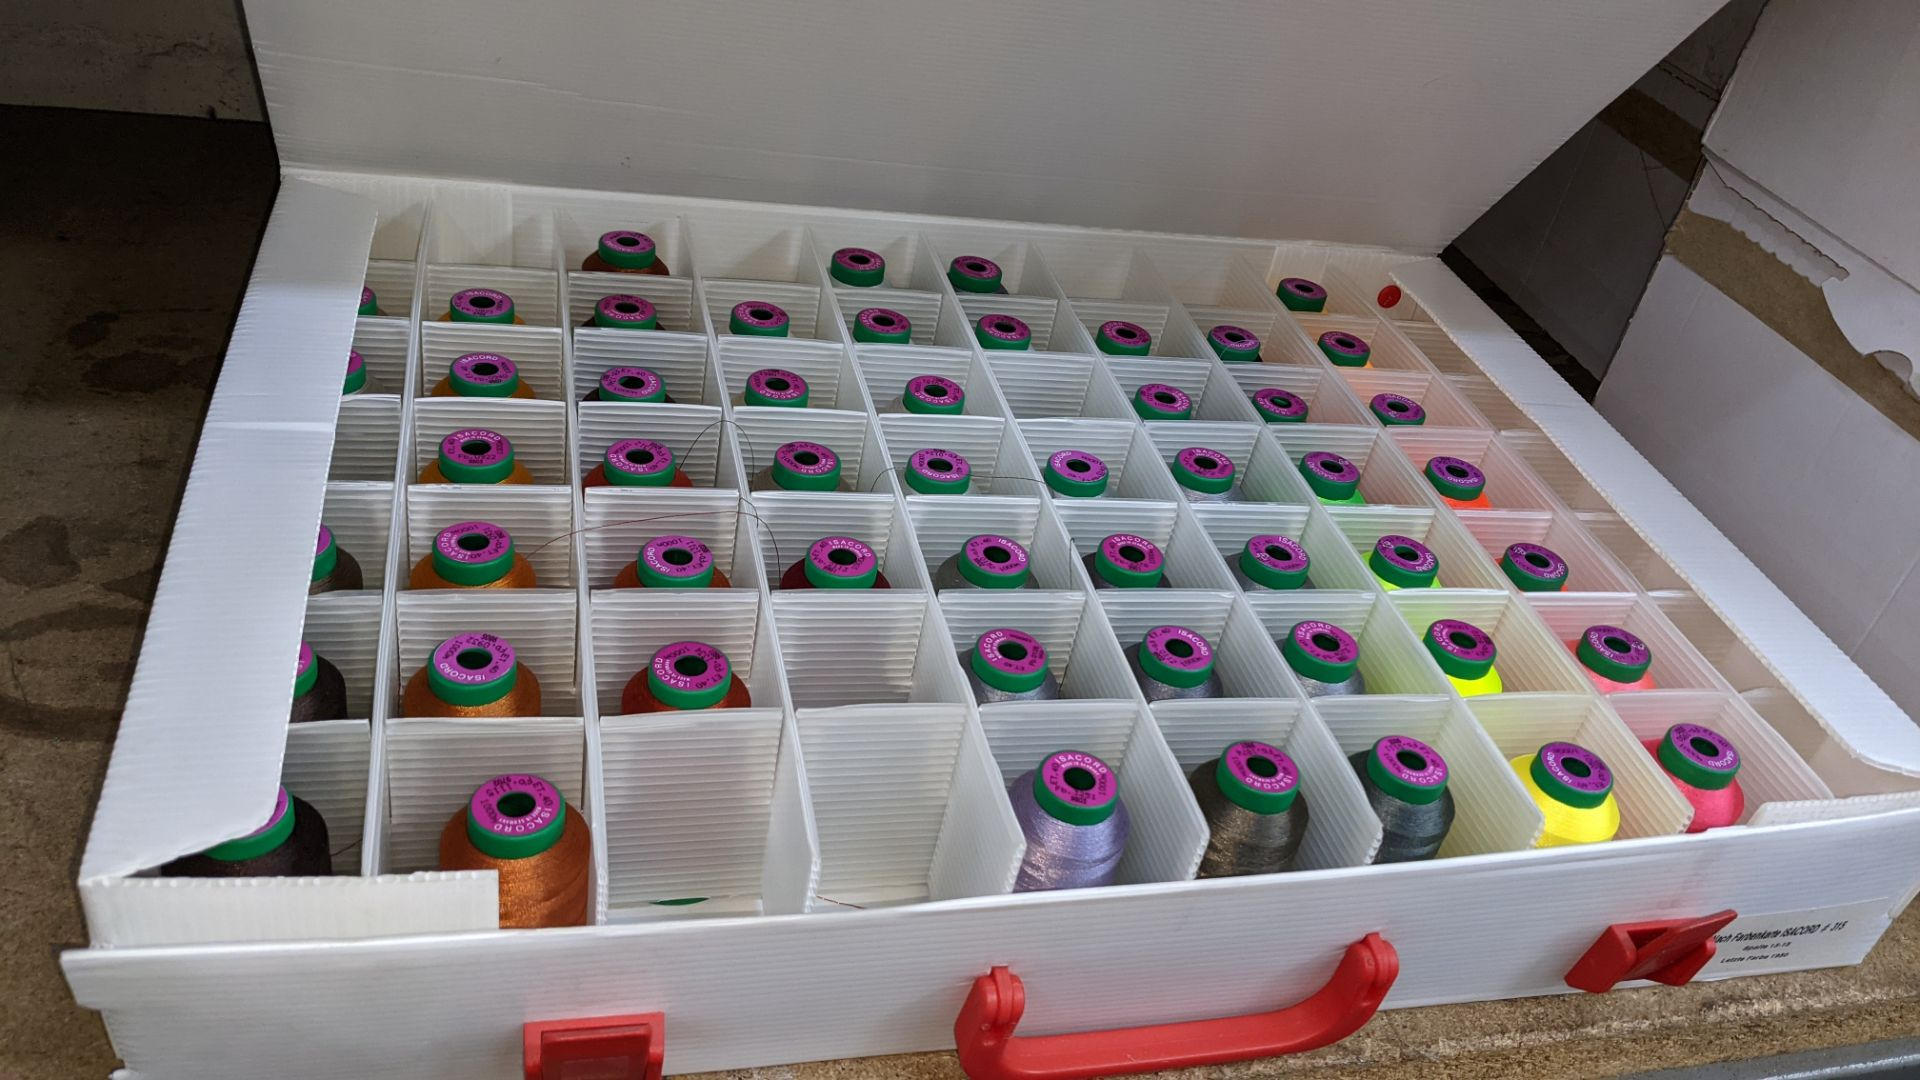 5 large cases of Ackermann Isacord thread - Image 3 of 13